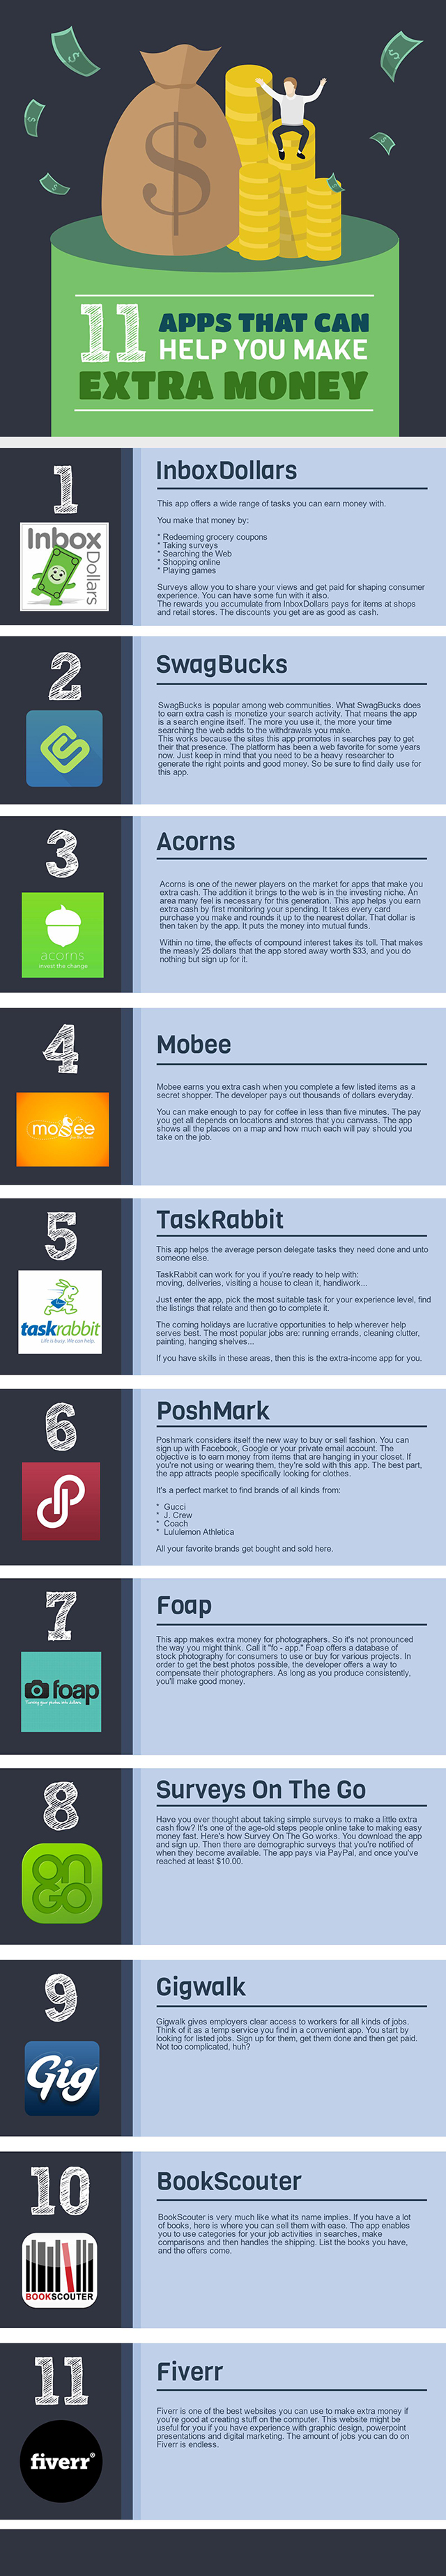 Apps That Can Help You Make Extra Money - Infographic